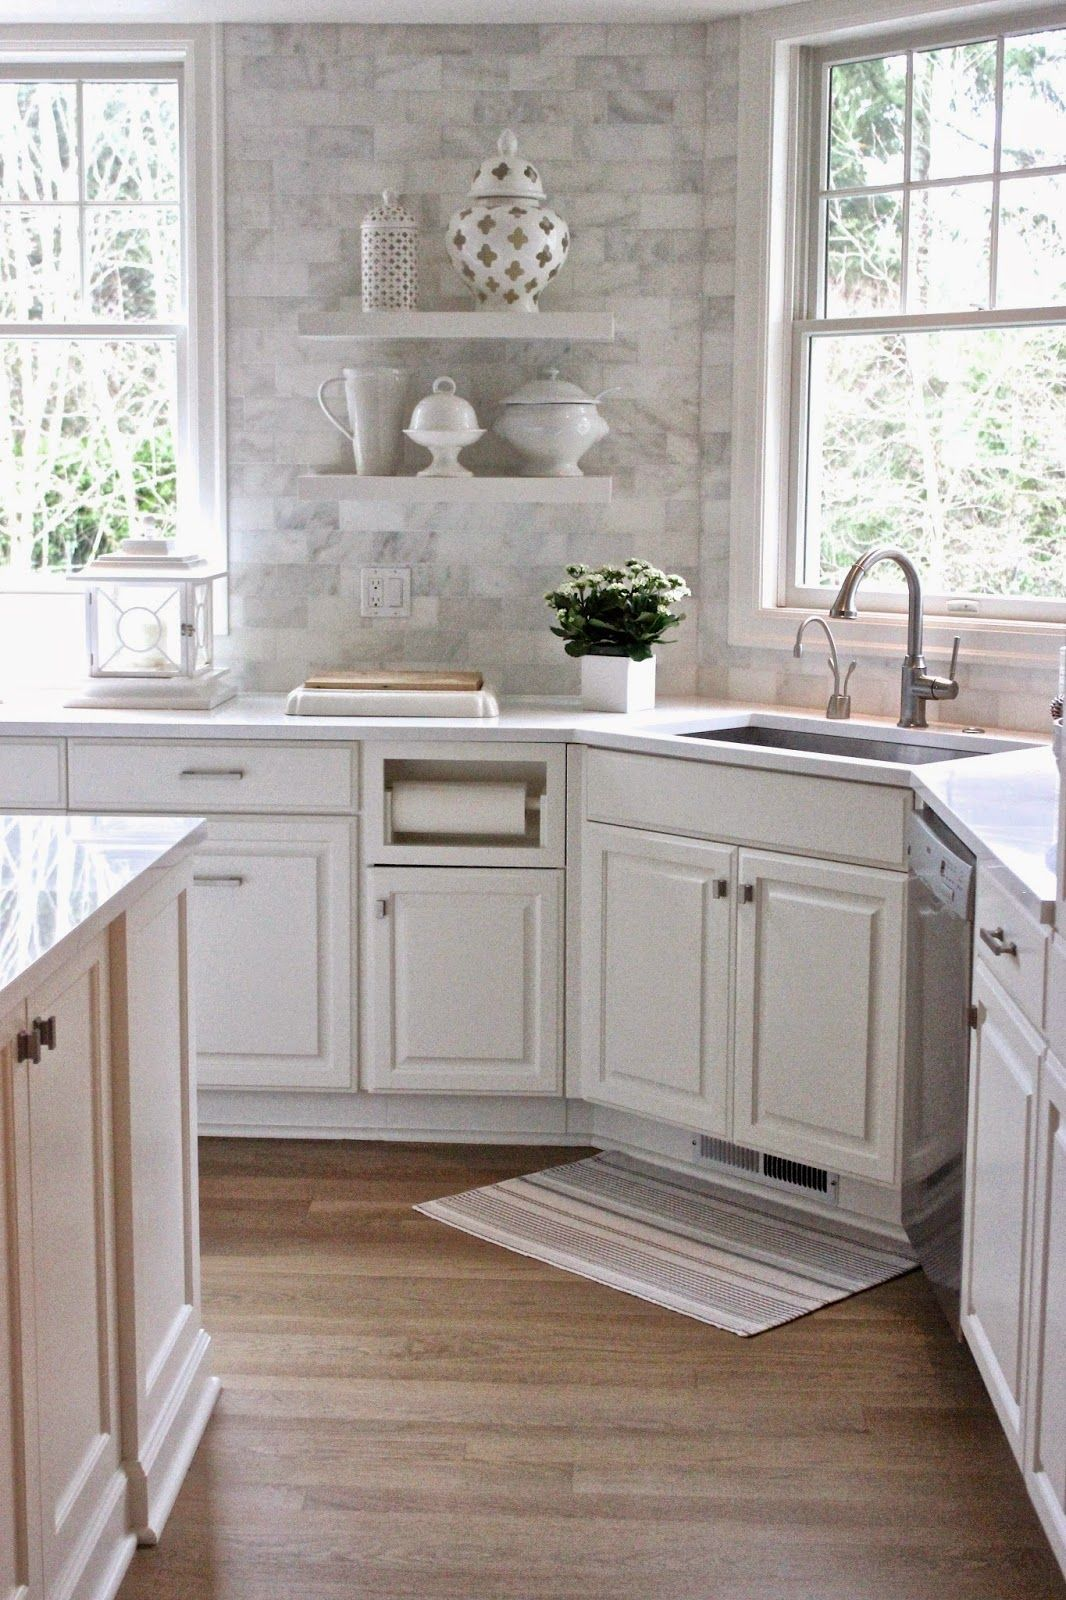 White marble subway backsplash tile countertop espresso cabinet from - White Quartz Countertops And The Backsplash Is Carrera Marble Subway Tiles Pic From Forever